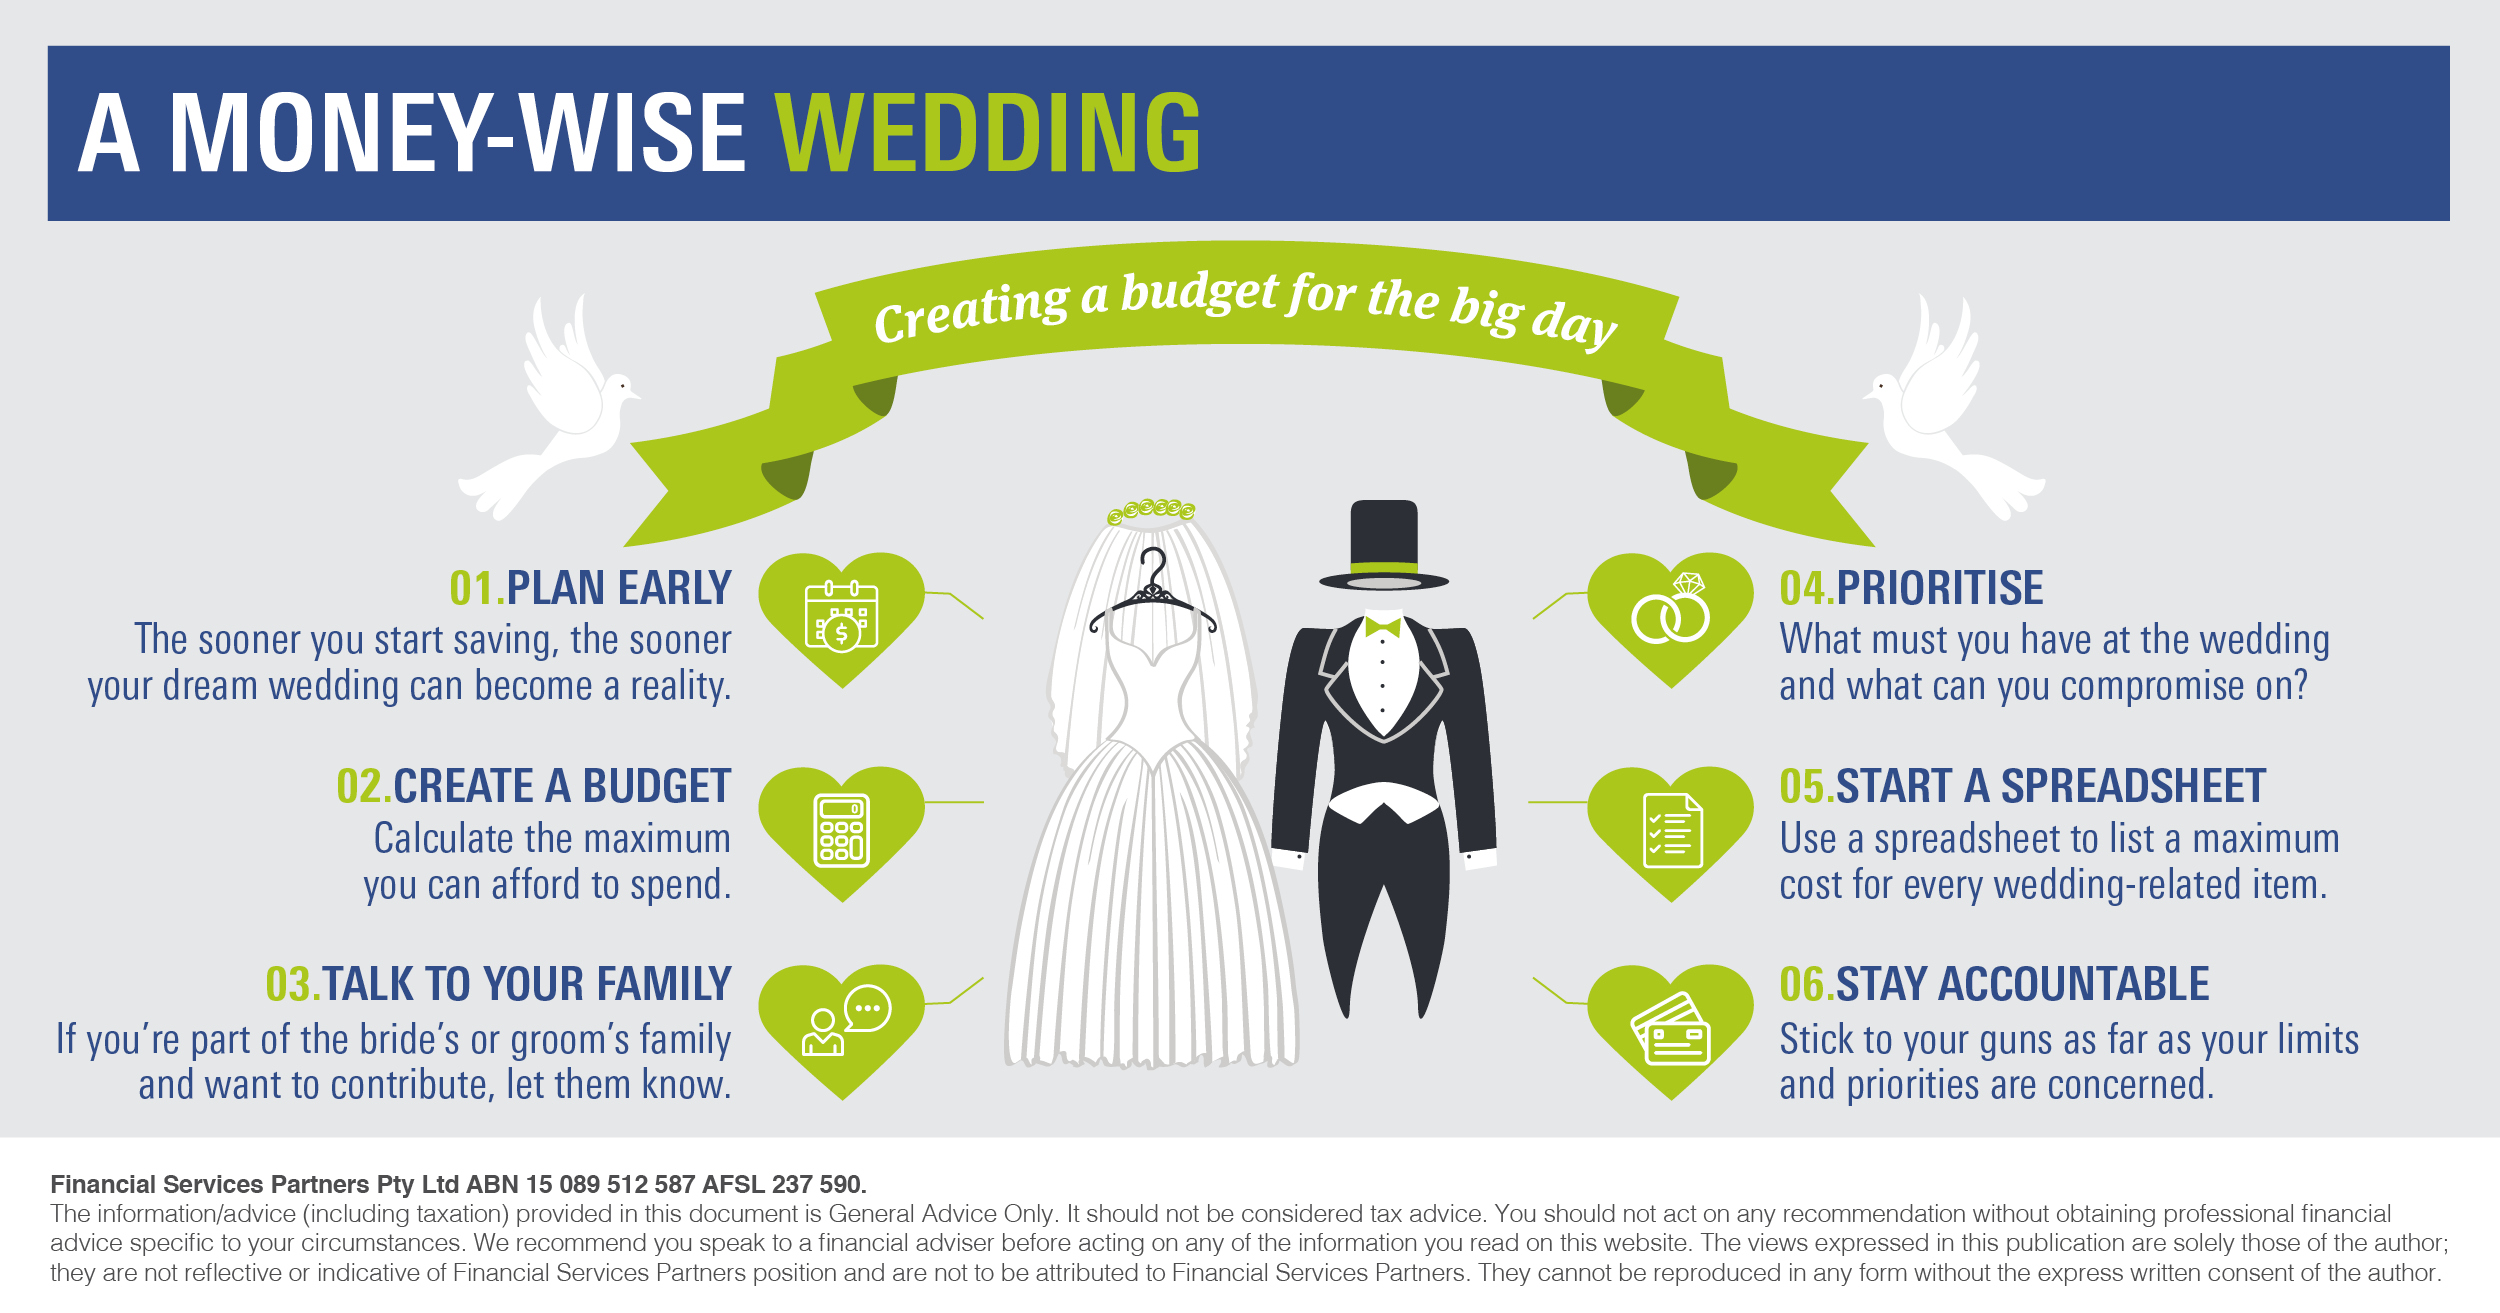 Kelly 2 MASTER:Design:Kate Hage Working:Article Hub:Social Media Infographics:Wordpress Infographics:For sharing:Infographic_A money-wise wedding_v2.jpg